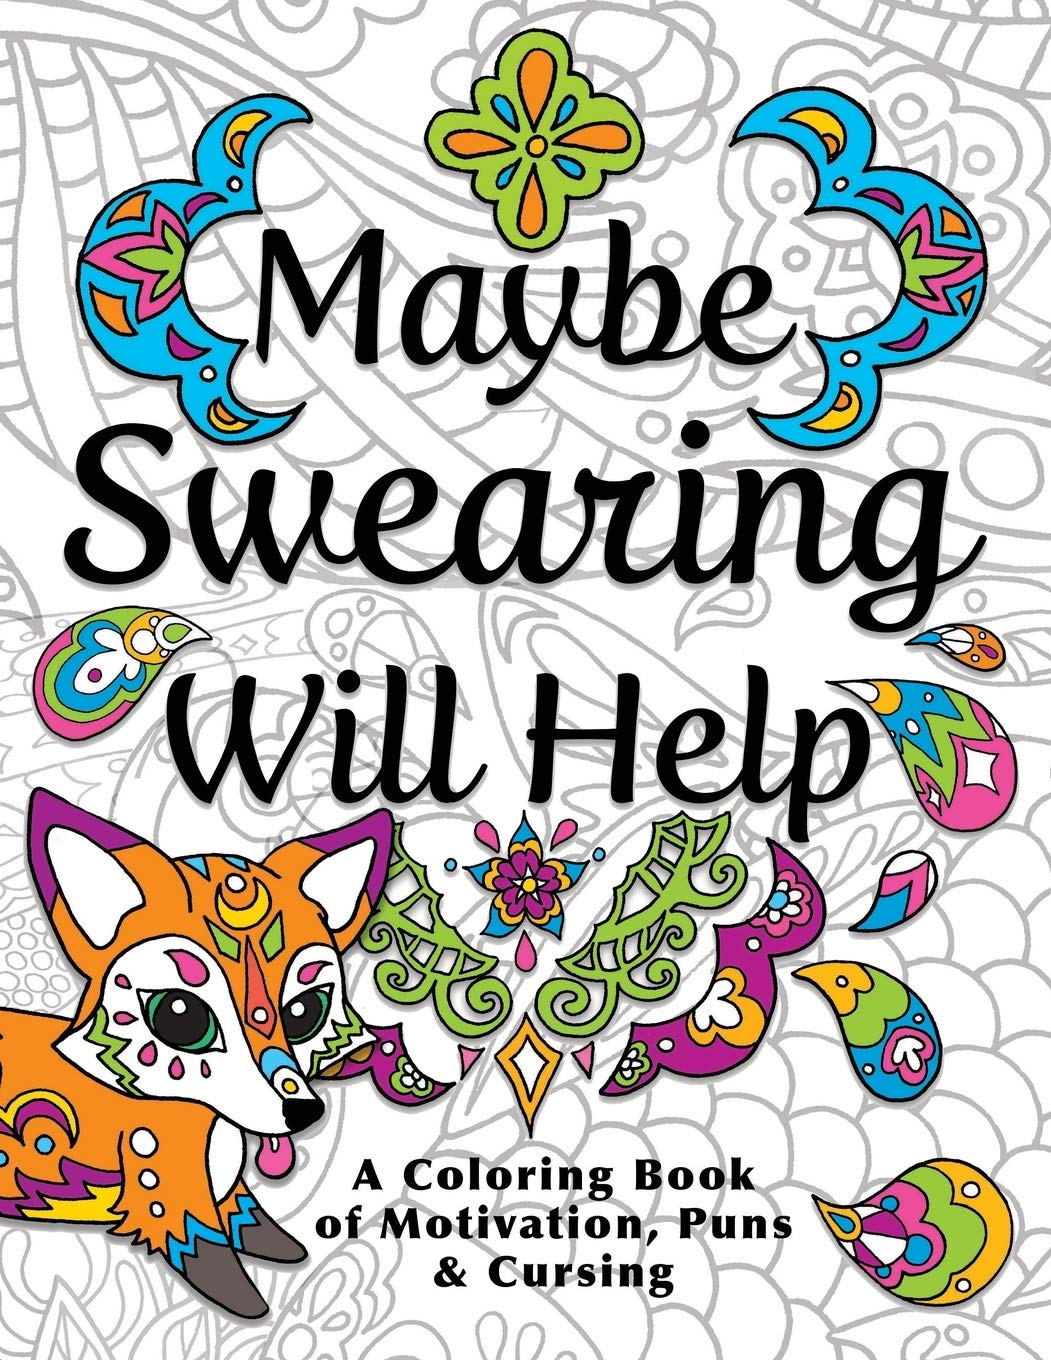 Amazon.com: Maybe Swearing Will Help: Adult Coloring Book